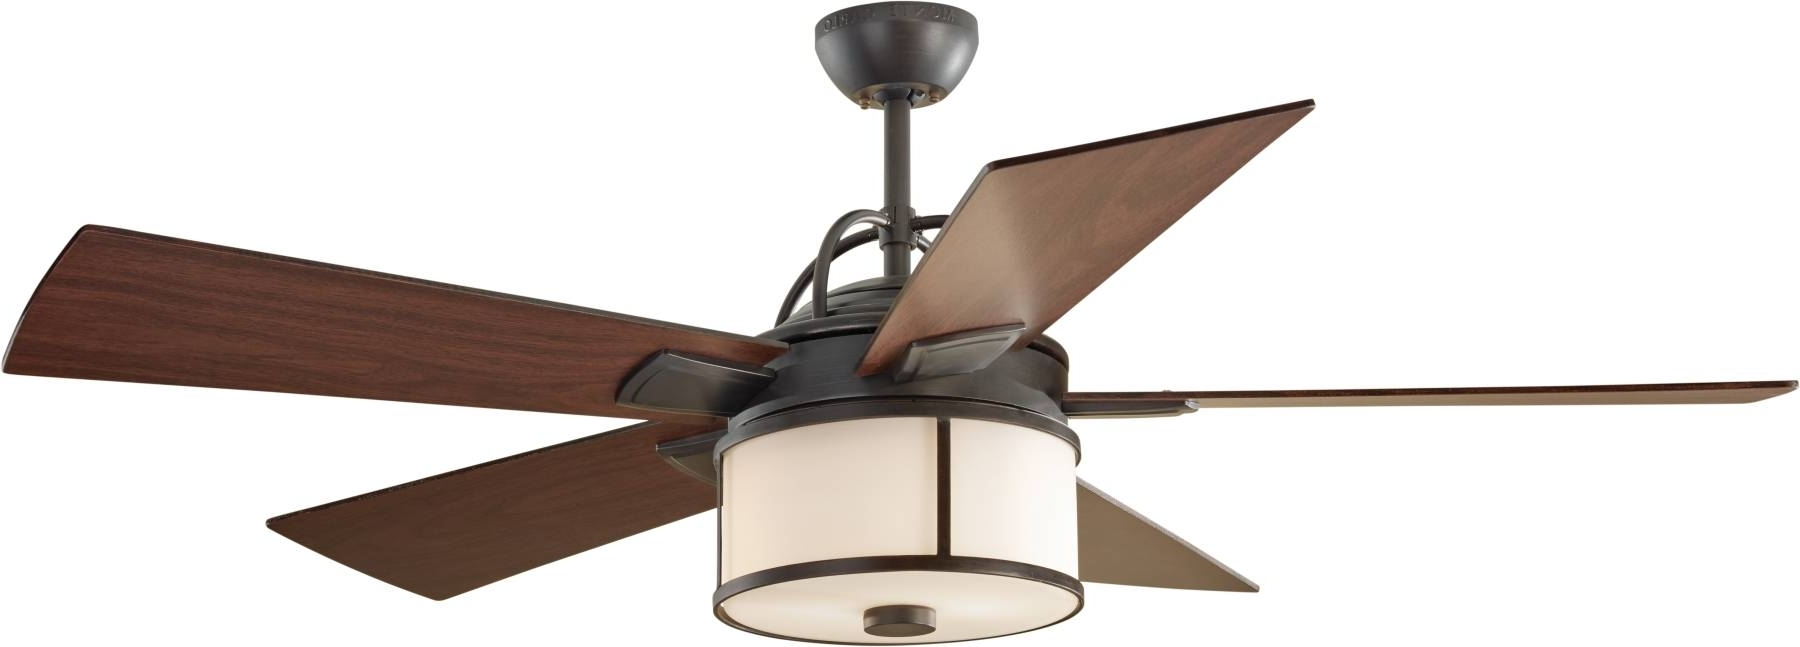 Replacement Globes For Ceiling Fan – Pixball With Most Current Outdoor Ceiling Fans With Light Globes (Gallery 20 of 20)